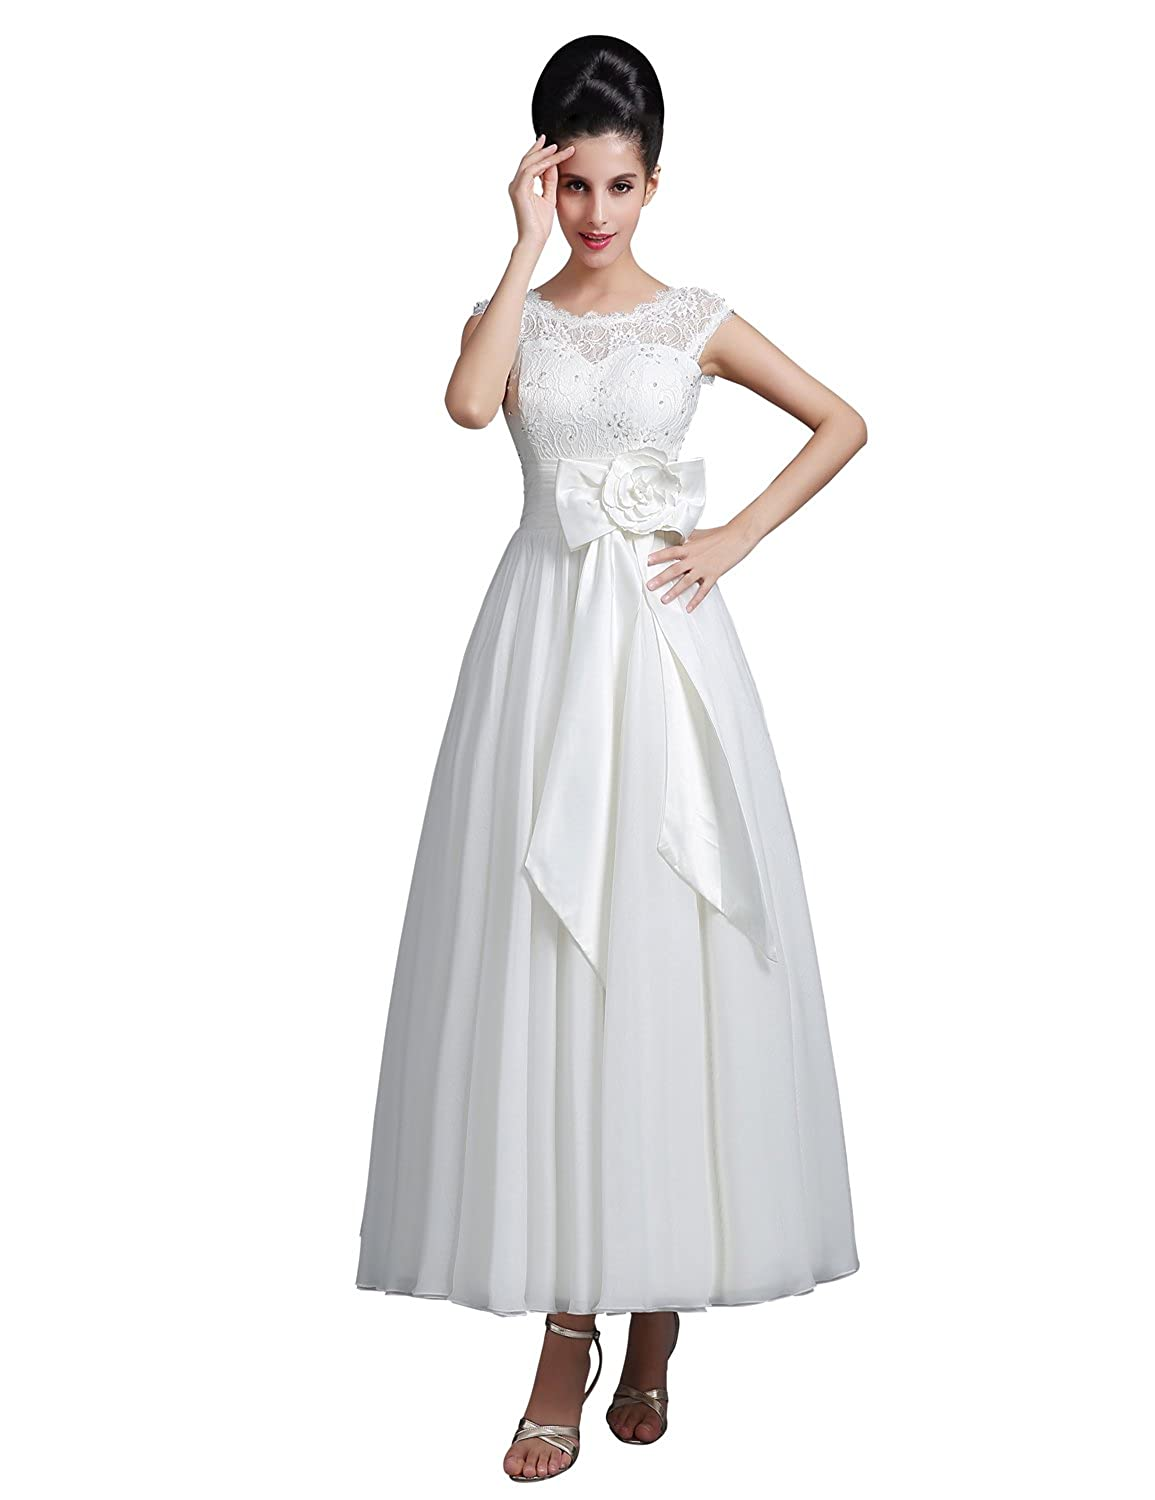 Clearbridal Women's A-Line White Wedding Dress Lace Chiffon Ankle Length Bridal Gowns with Beaded Hand Made Flower SD267